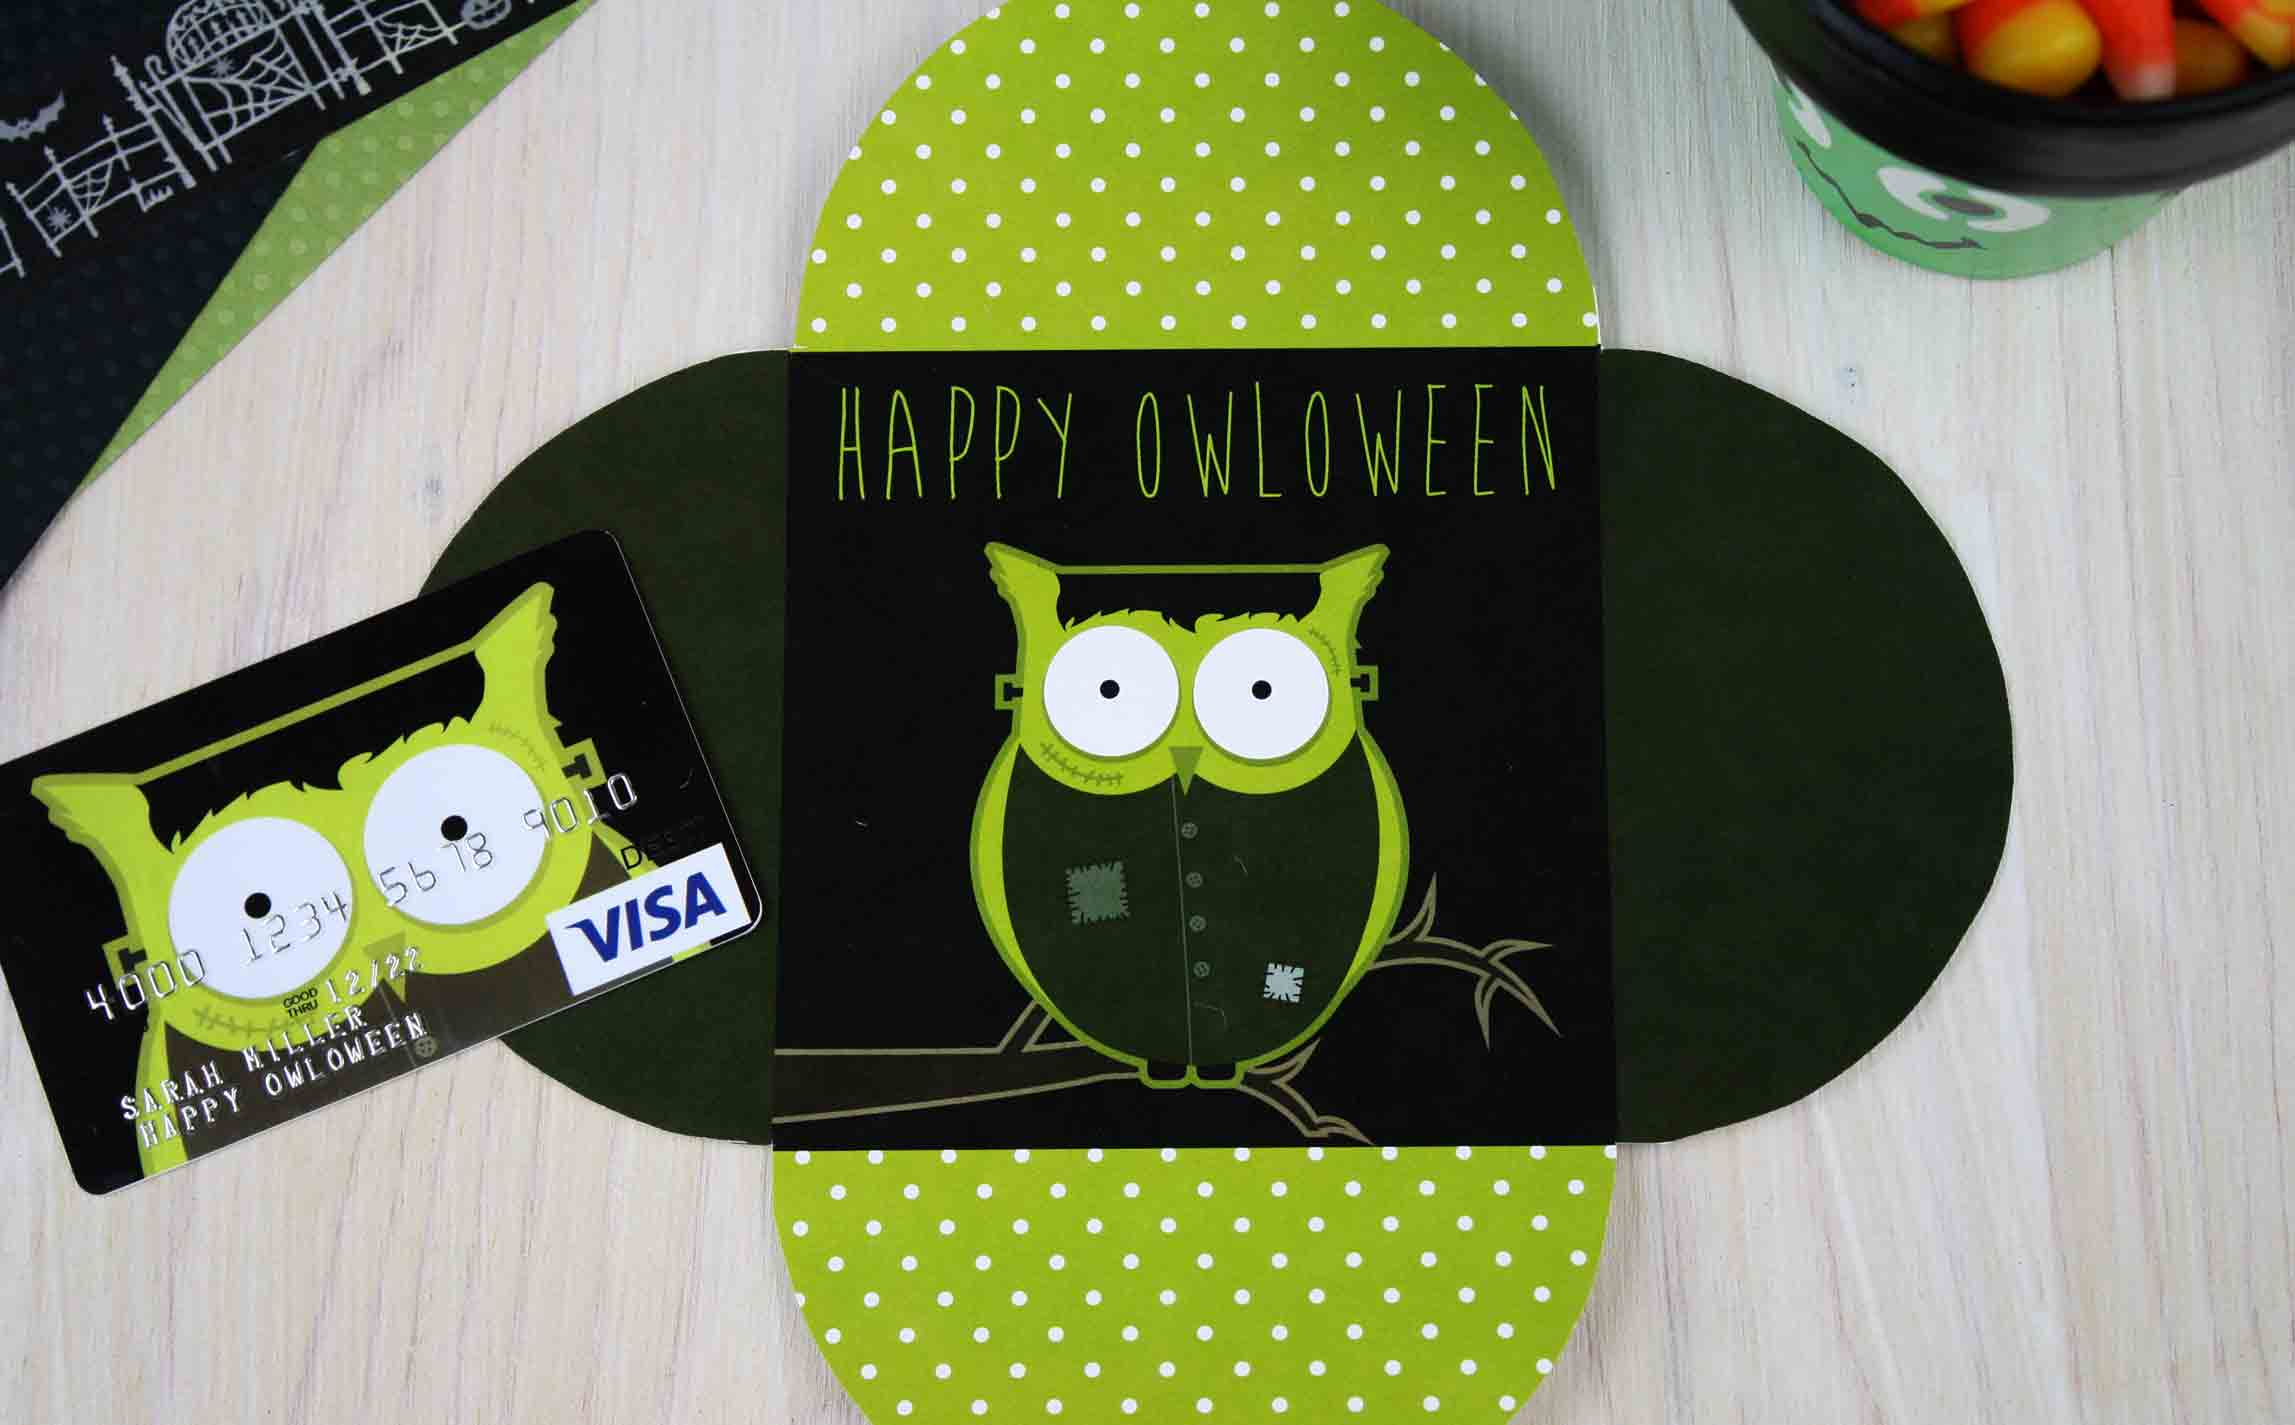 Happy OWLoween Frankenstein inside of card